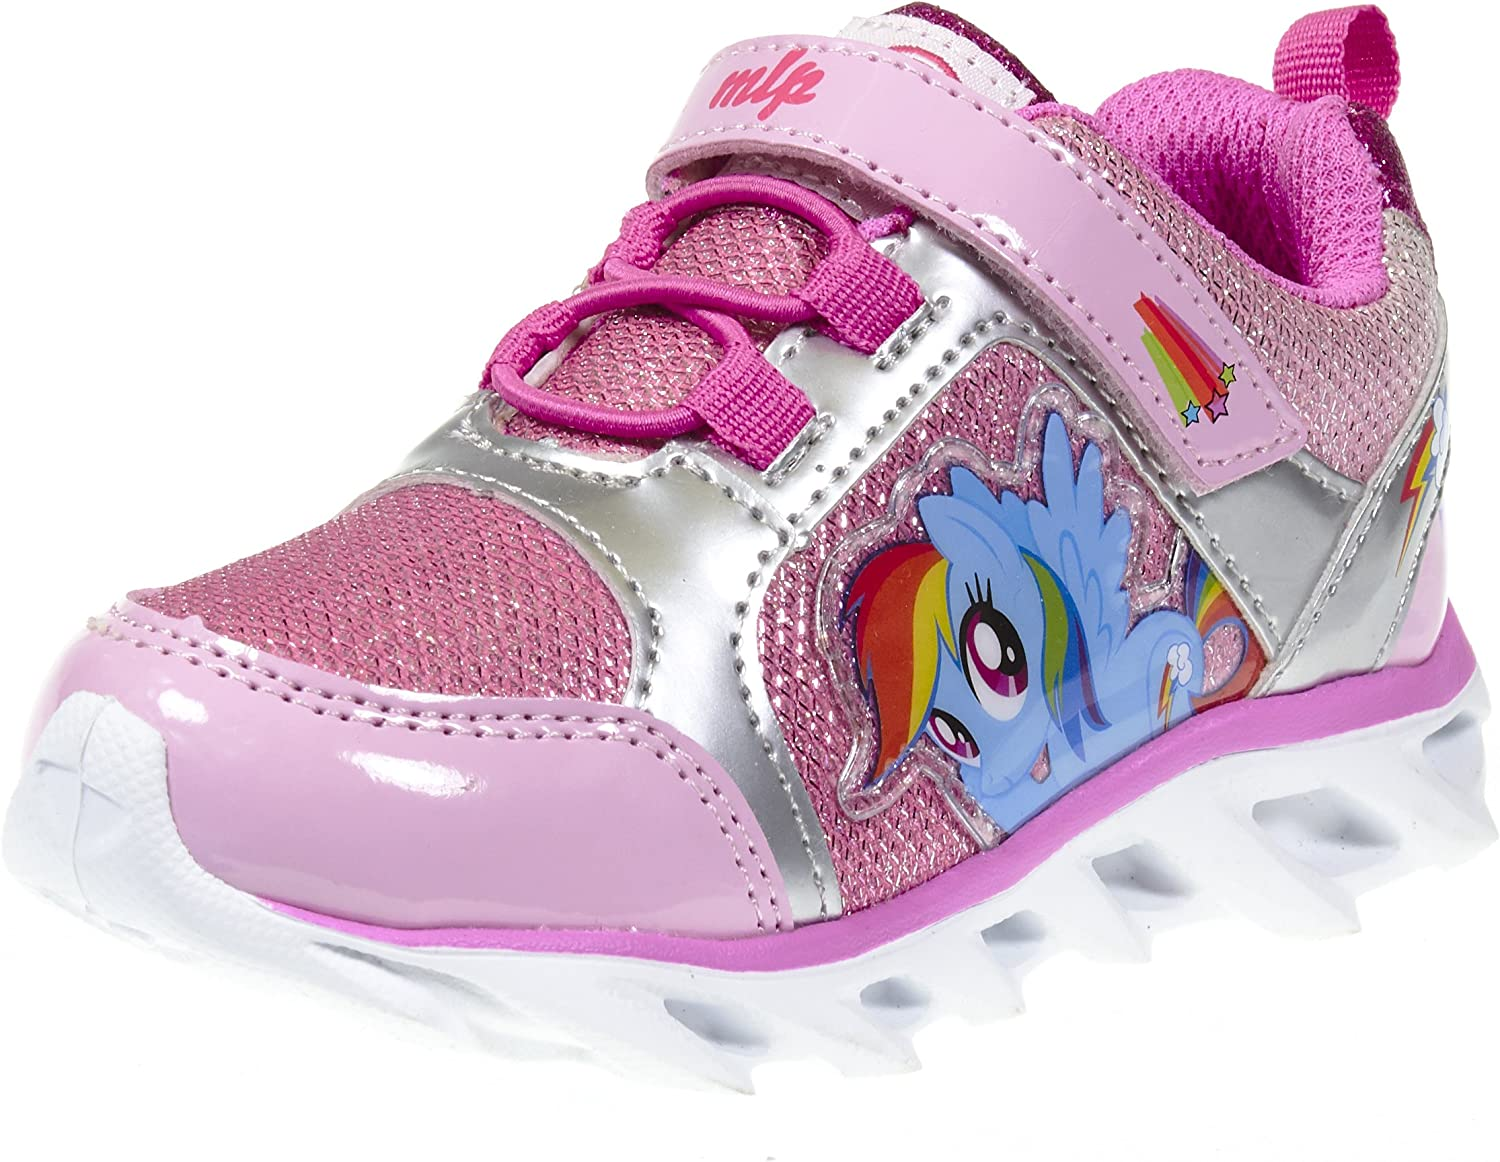 BRAND NEW GIRL/'S SIZE 4-5 ATHLETIC WORKS WATER SHOES YOUTH SIZE